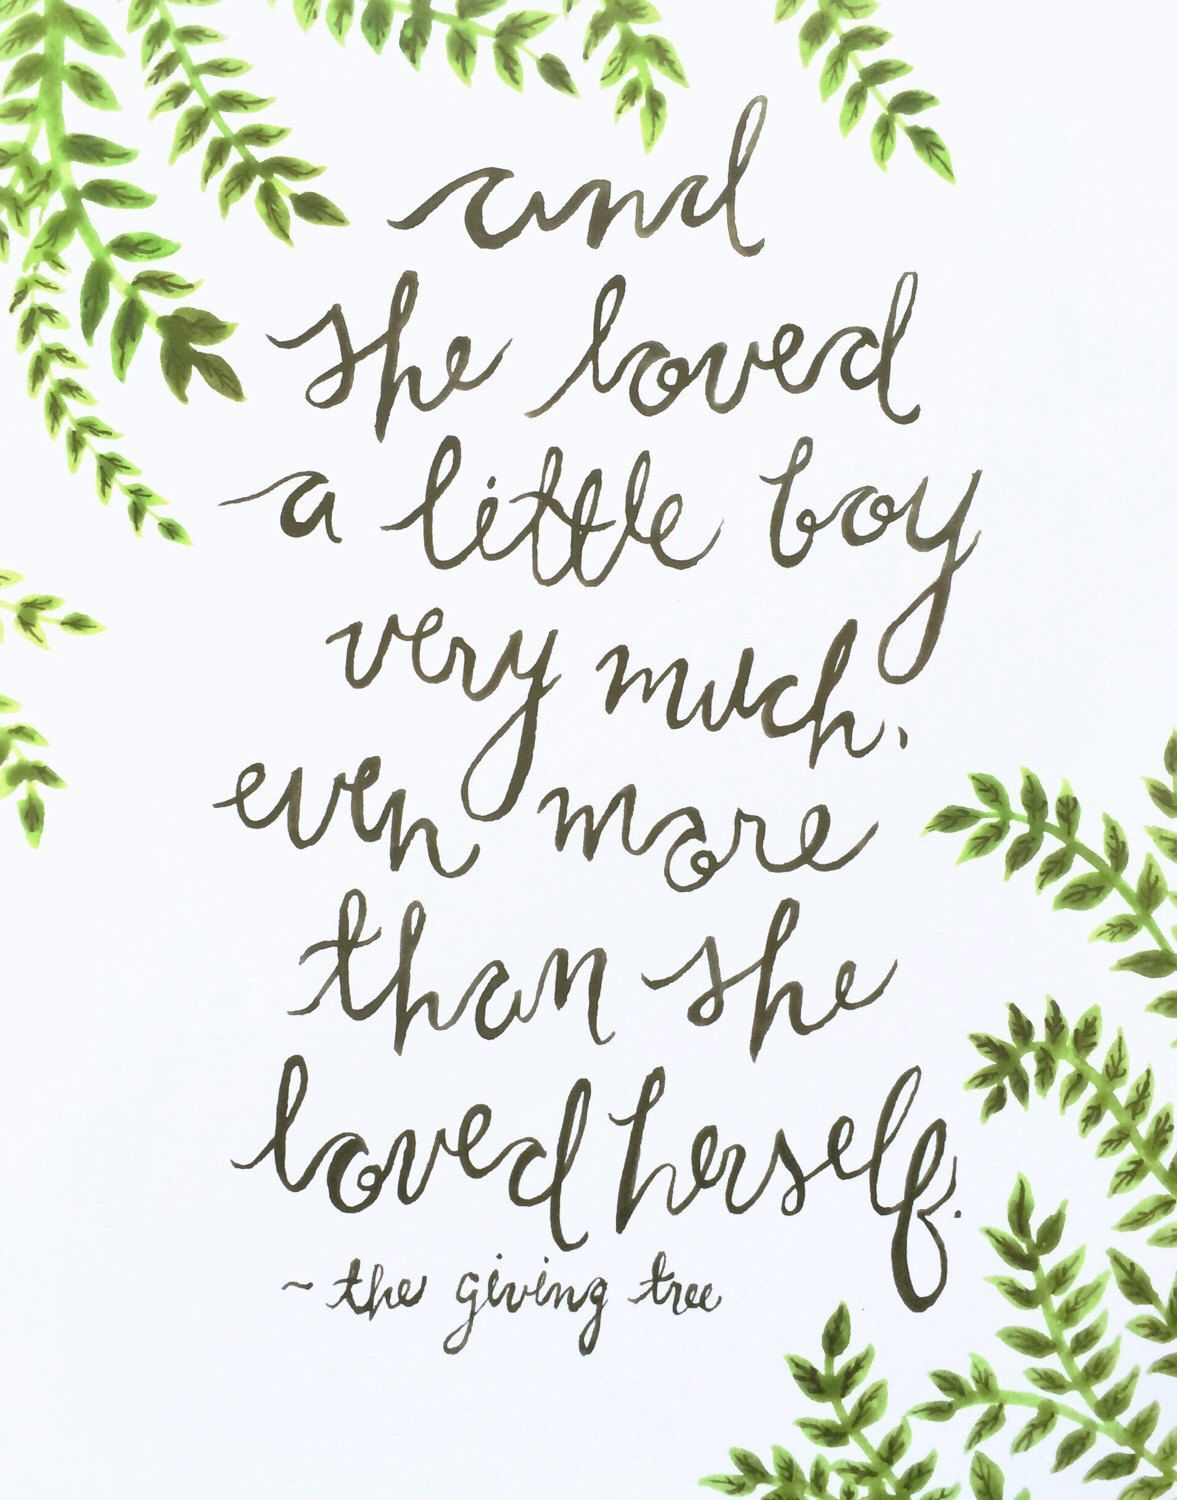 Watercolor Painting The Giving Tree Quote By